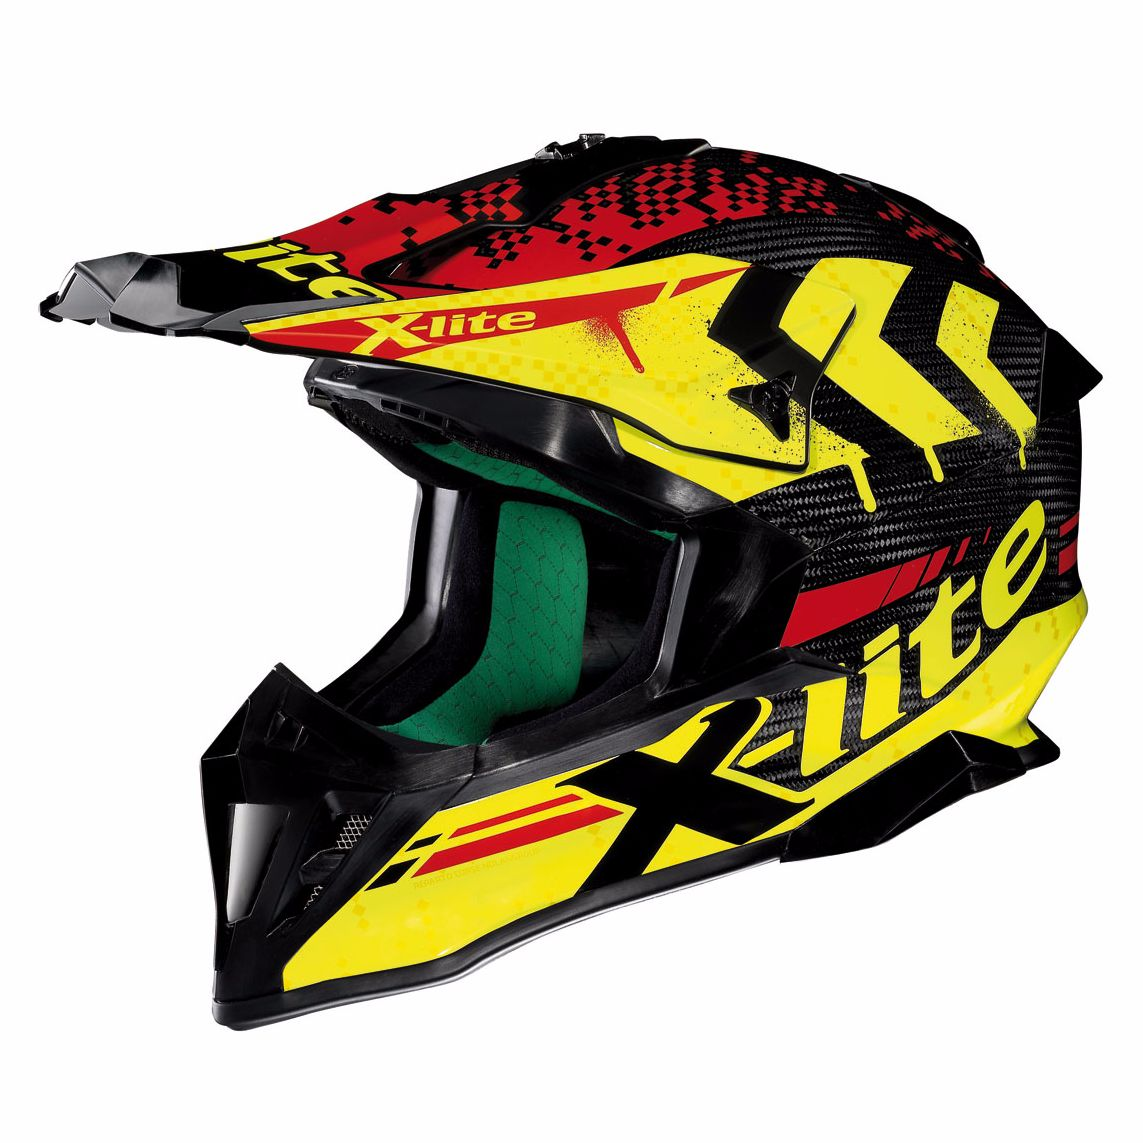 Casque Cross X-lite X-502 Ultra Carbon - Nac-nac Carbon 4